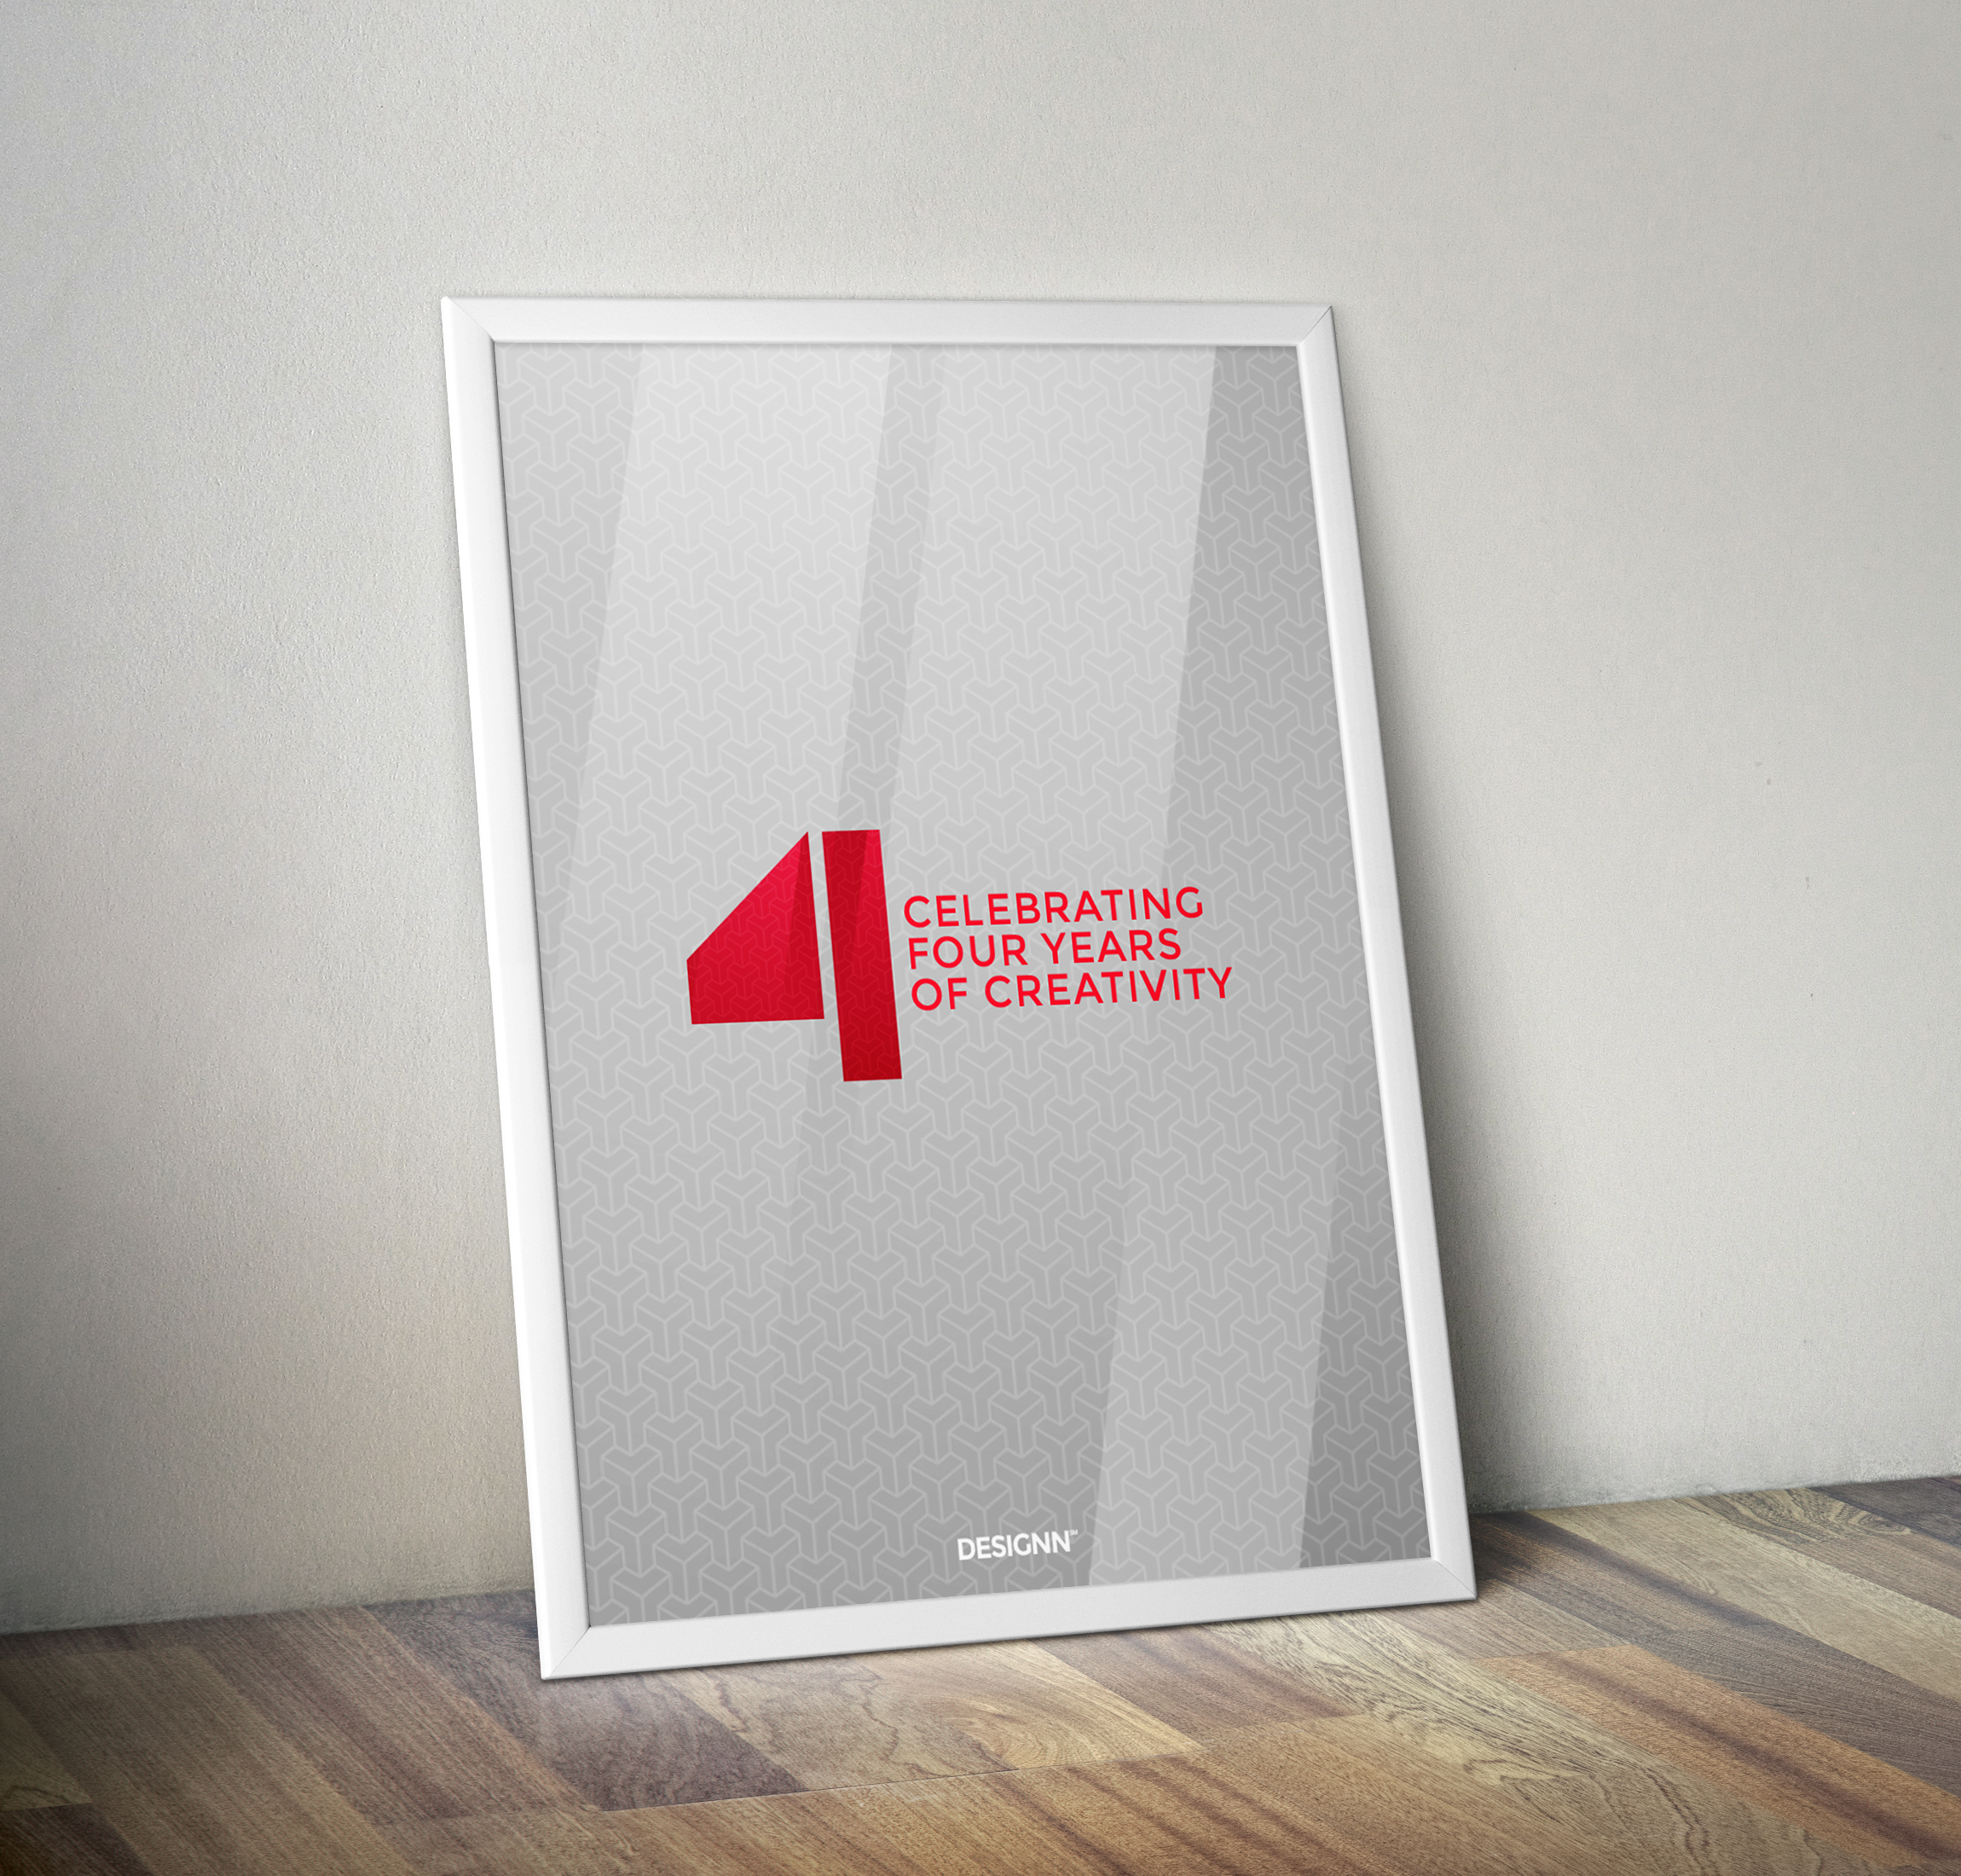 Designn's 4th Anniversary Poster by UJz